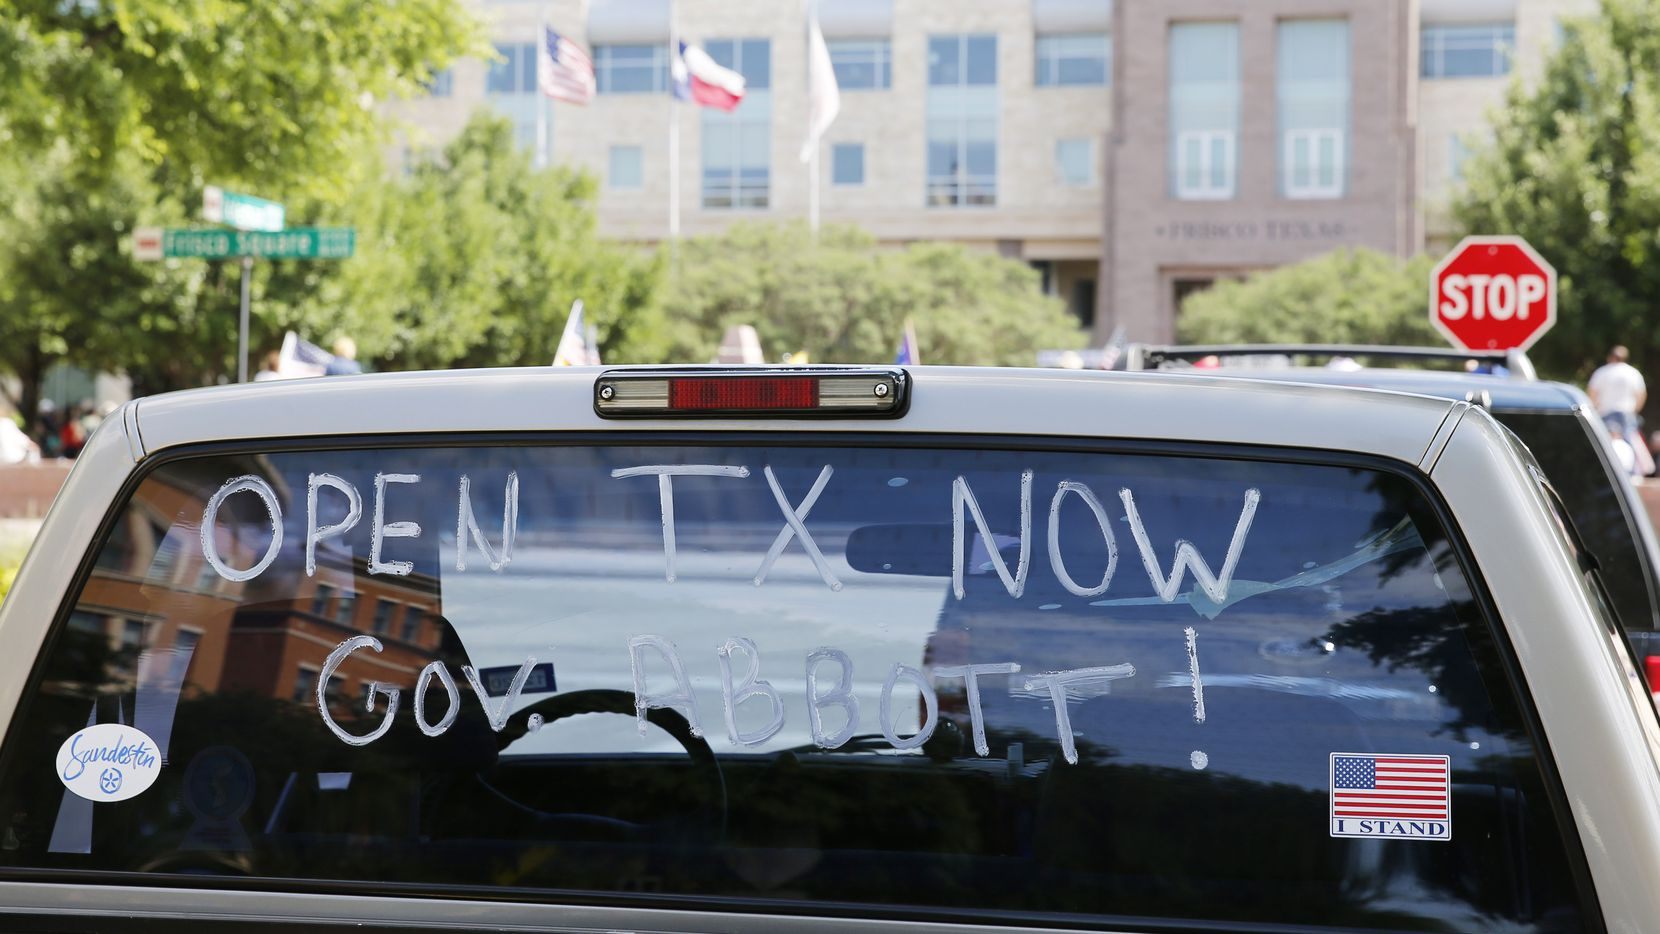 A message painted on a truck windshield promoted the reopening of Texas during a rally Saturday in front of the George A. Purefoy Municipal Center in Frisco.